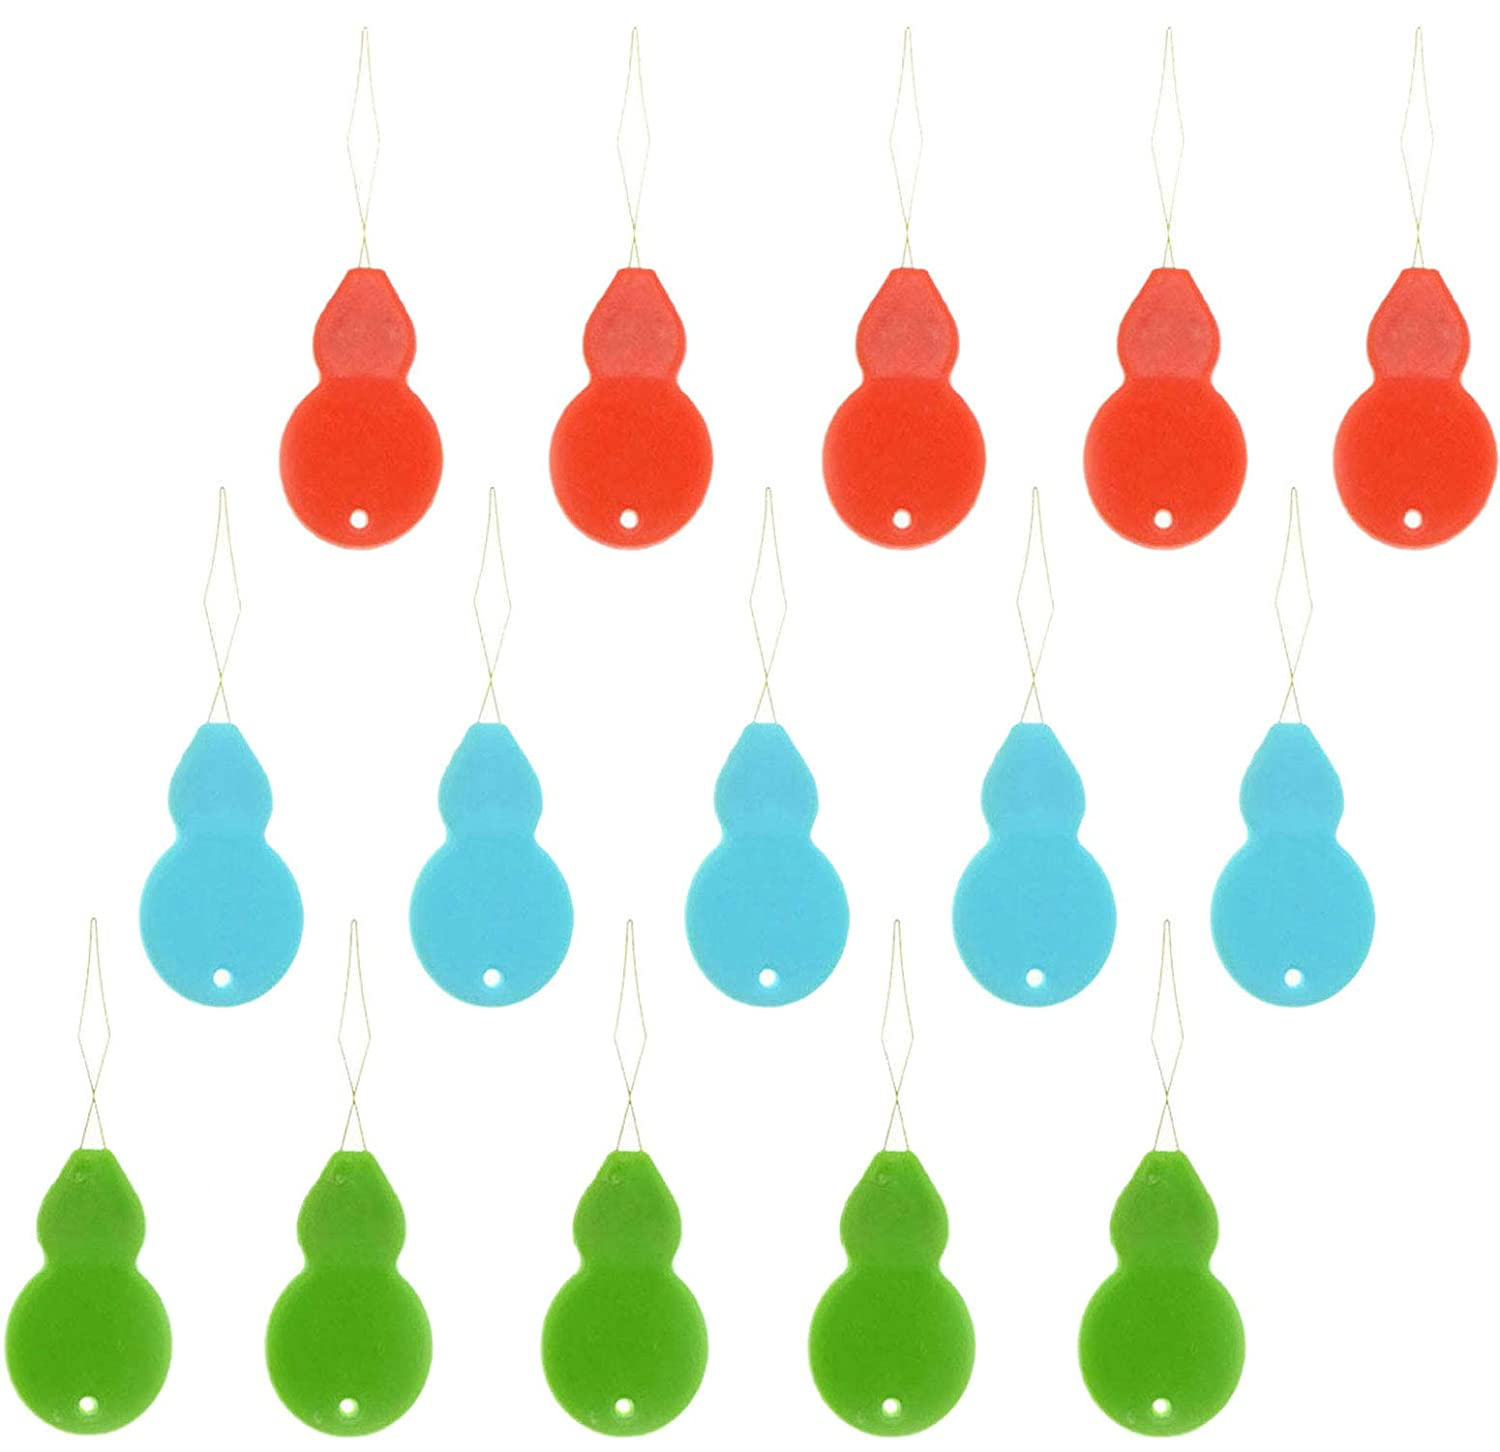 15PCS Needle Threaders Plastic Home Wire Gourd-Shaped Needle Thread Detector Red Blue Green